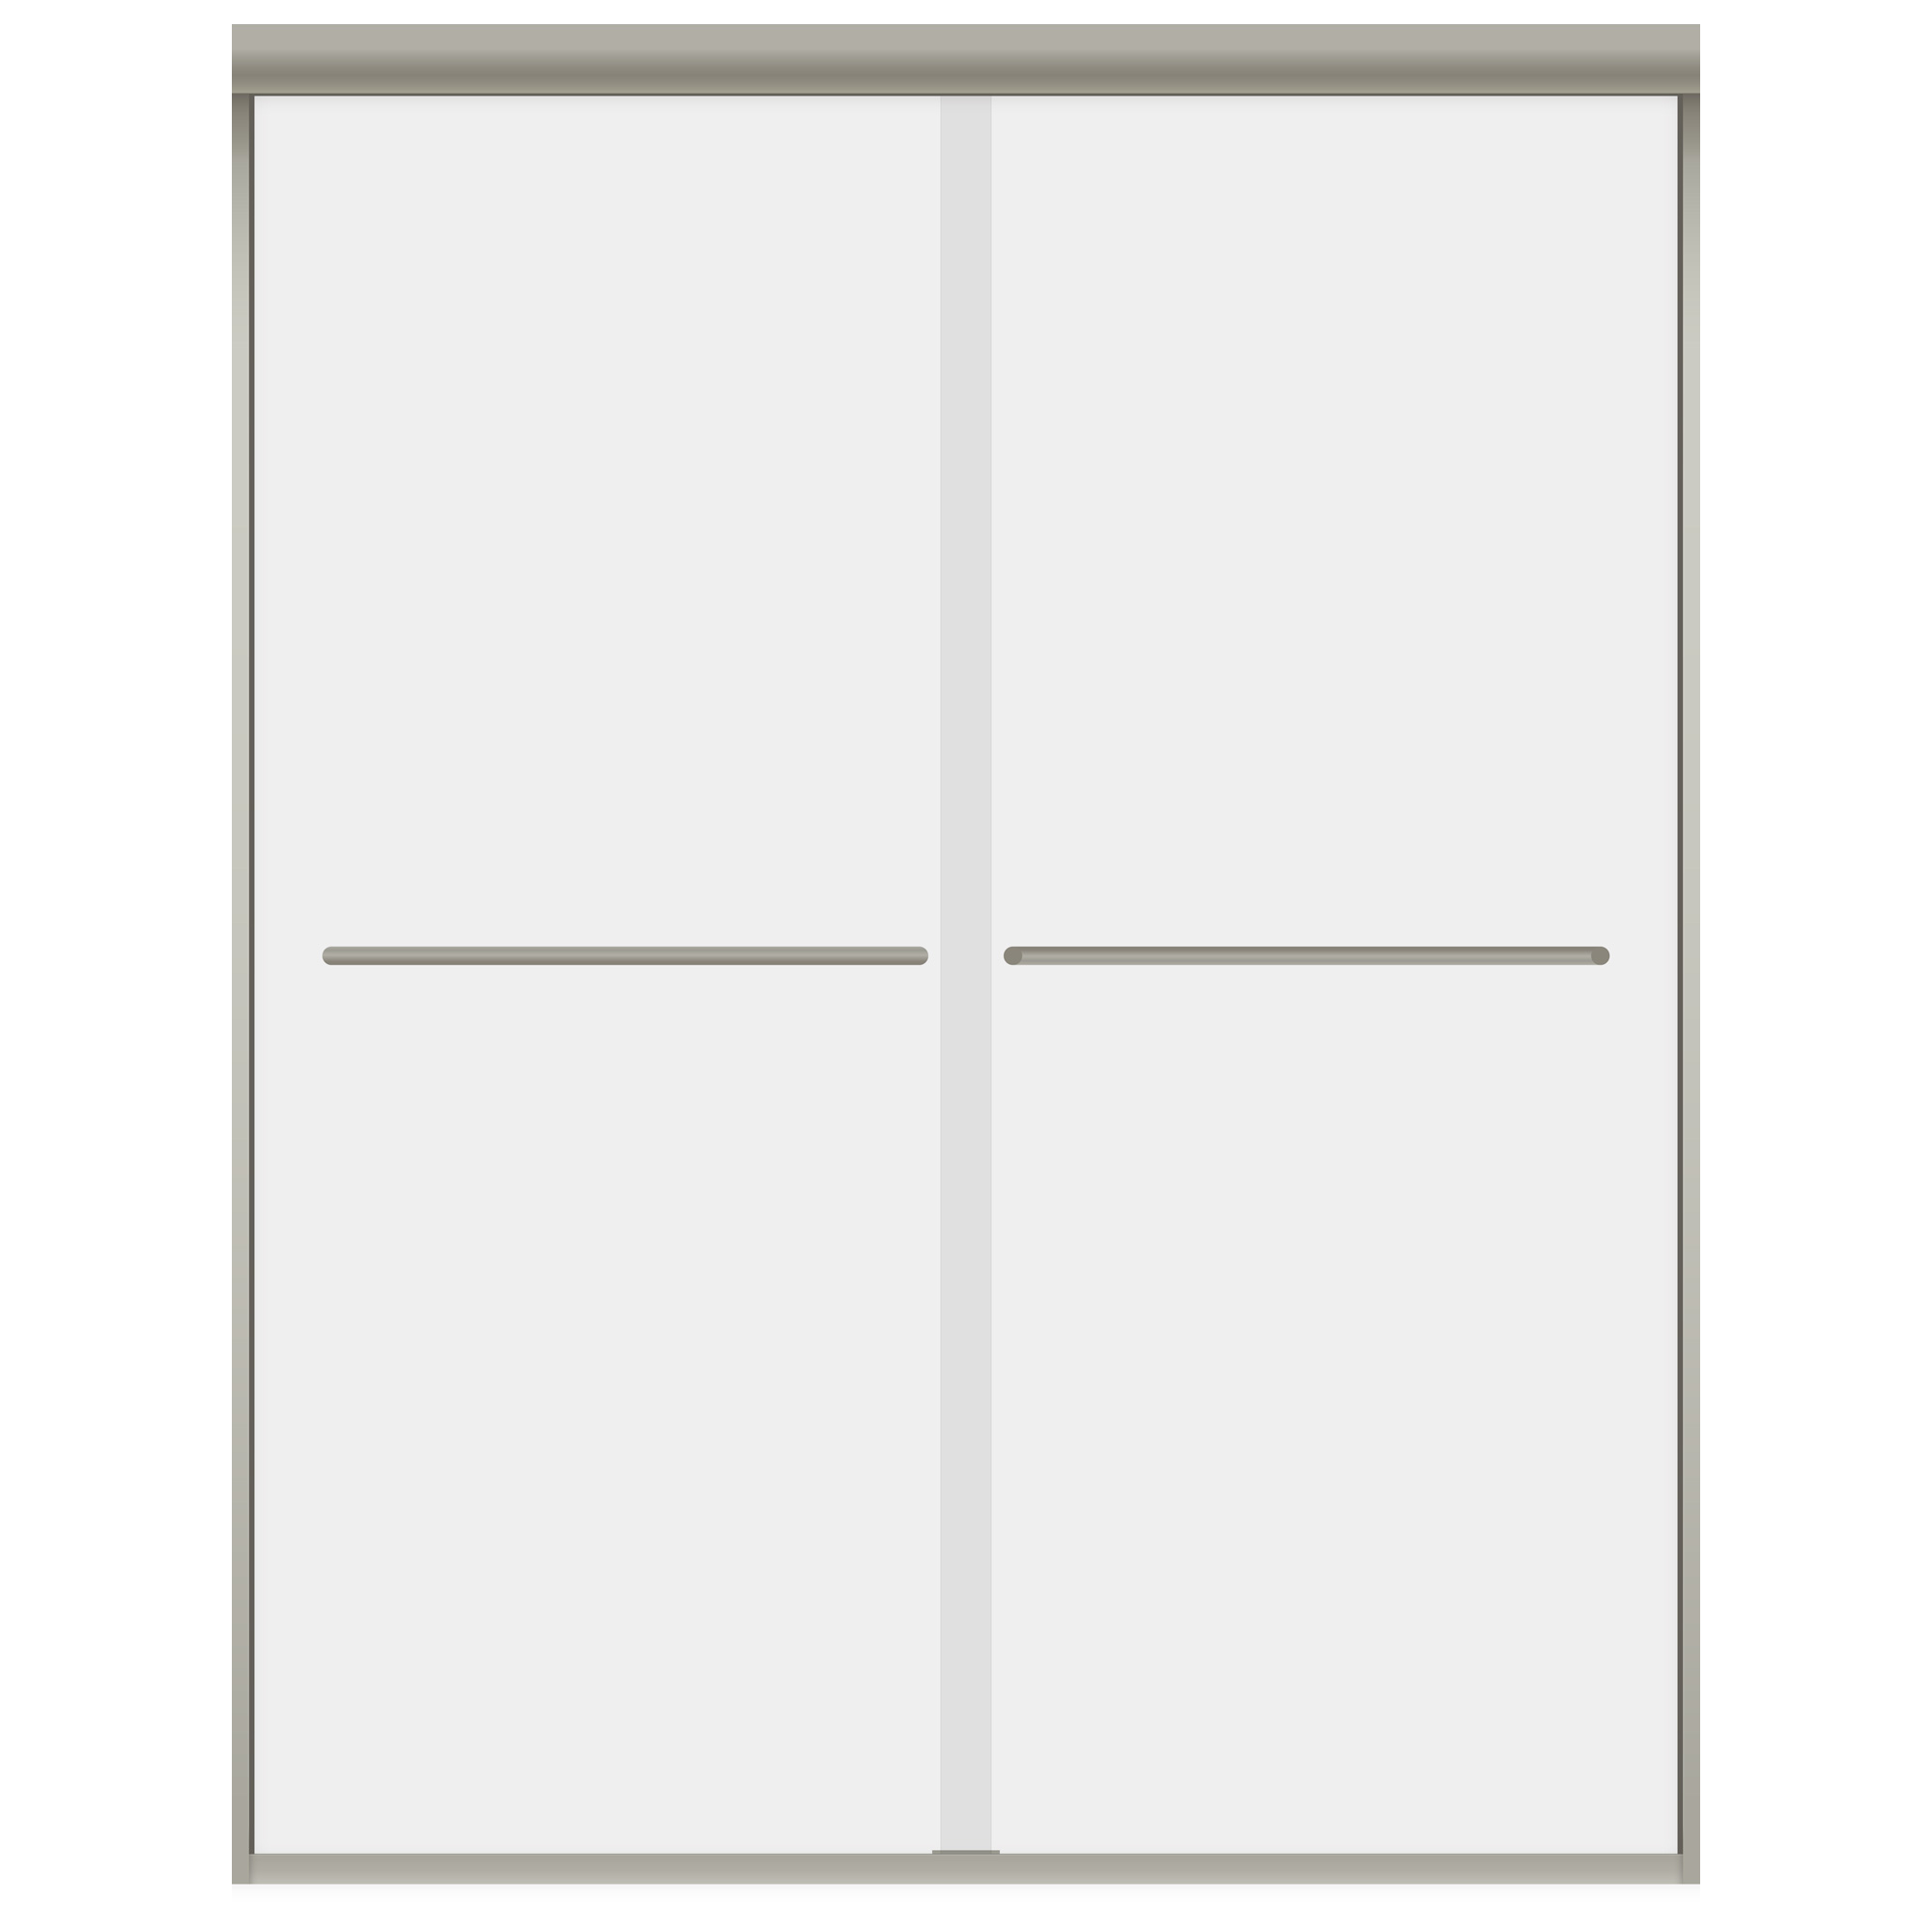 Lesscare clear glass shower door ultra b 44 48 wide x 76 high chrome - 44 48 W X 76 H Bypass Shower Door Brushed Nickel Ultra A Lbsda4876 B By Lesscare